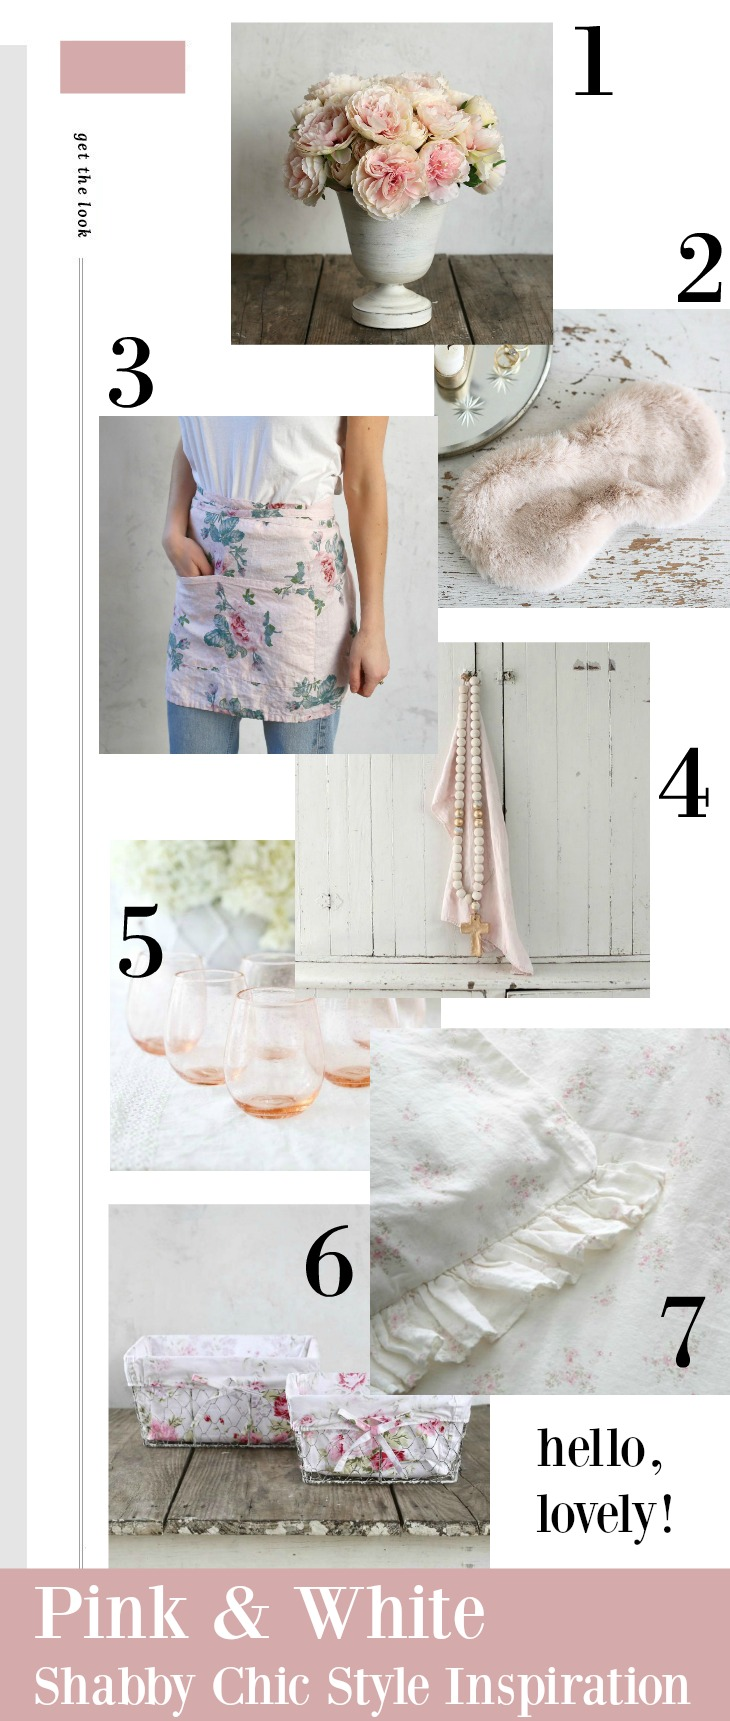 Pink and white shabby chic decor and inspiration on Hello Lovely Studio.